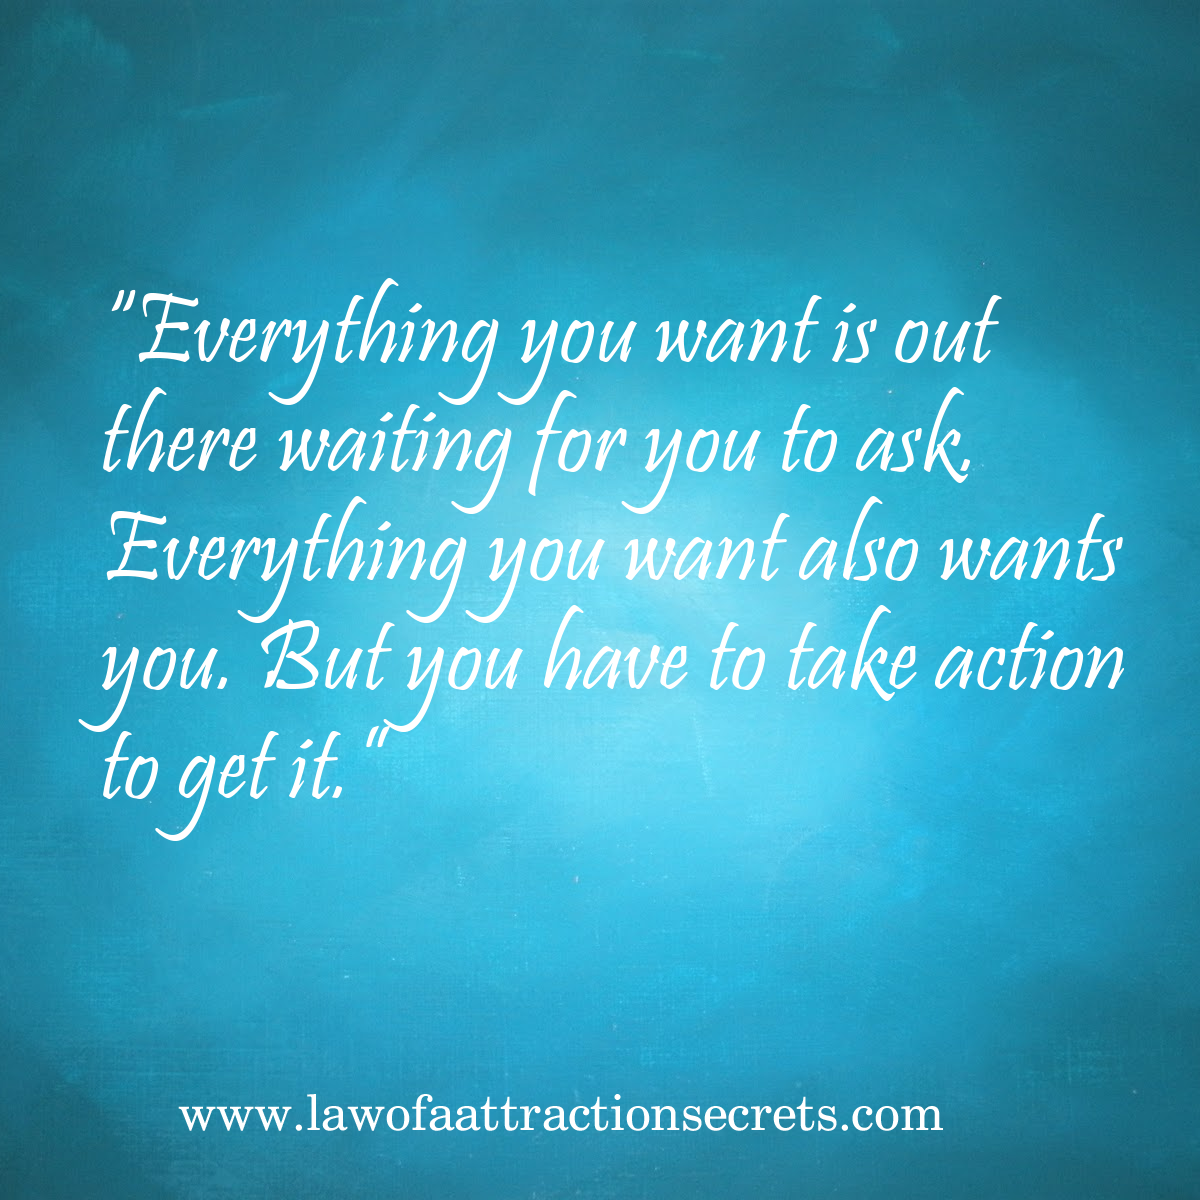 Everything you want is out there waiting for you to ask. http://t.co/NYtOoKMSi5 http://t.co/u8DkuWVdHd